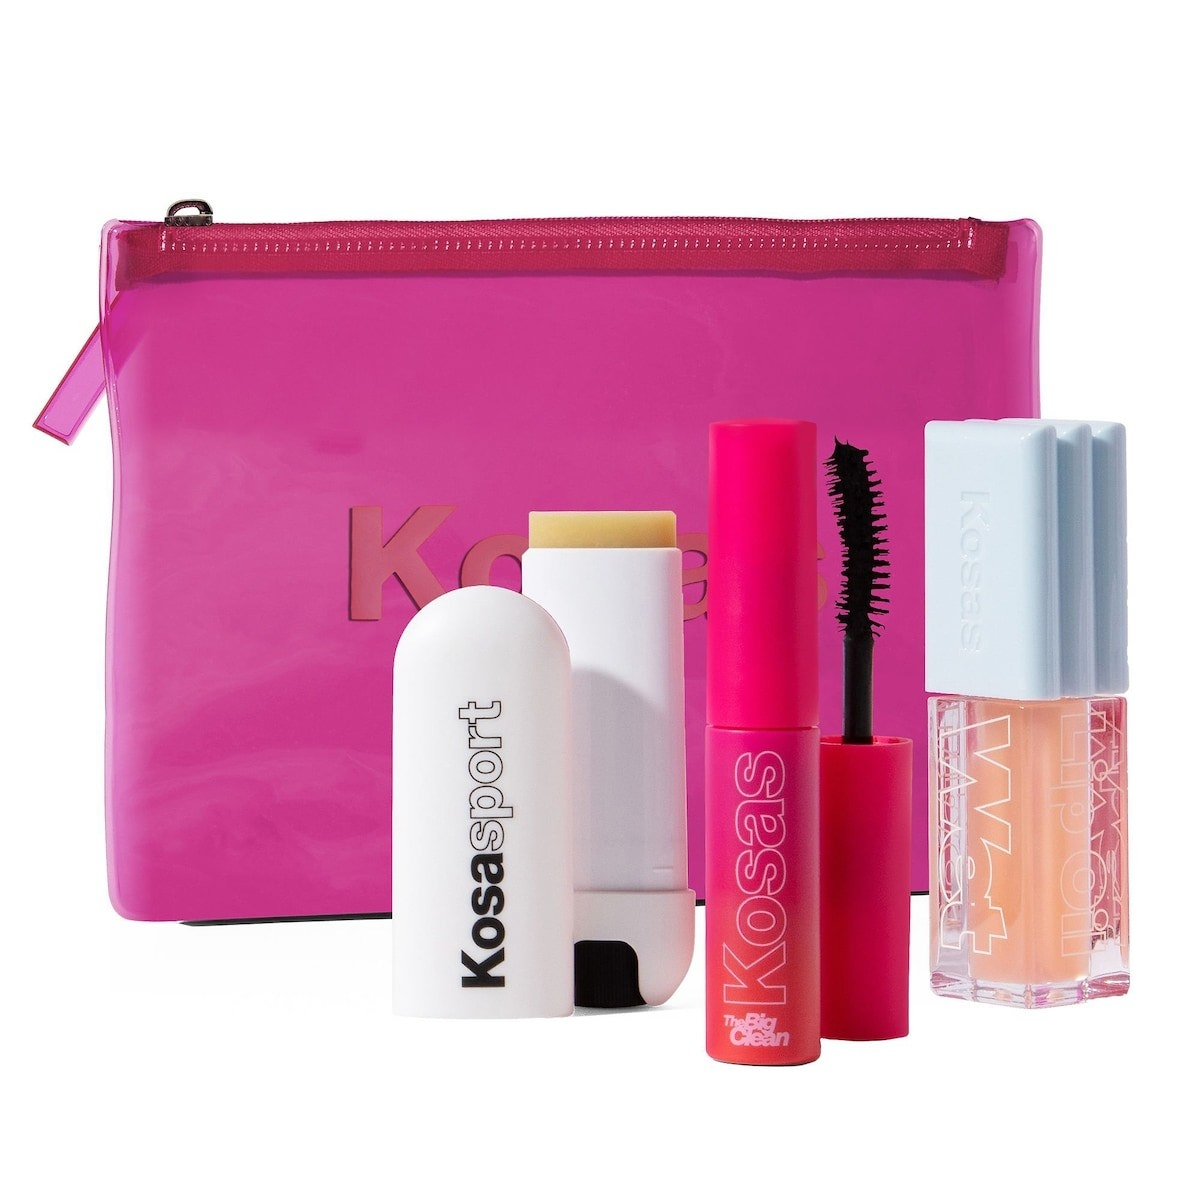 The Kosas set that comes with a little pink makeup bag